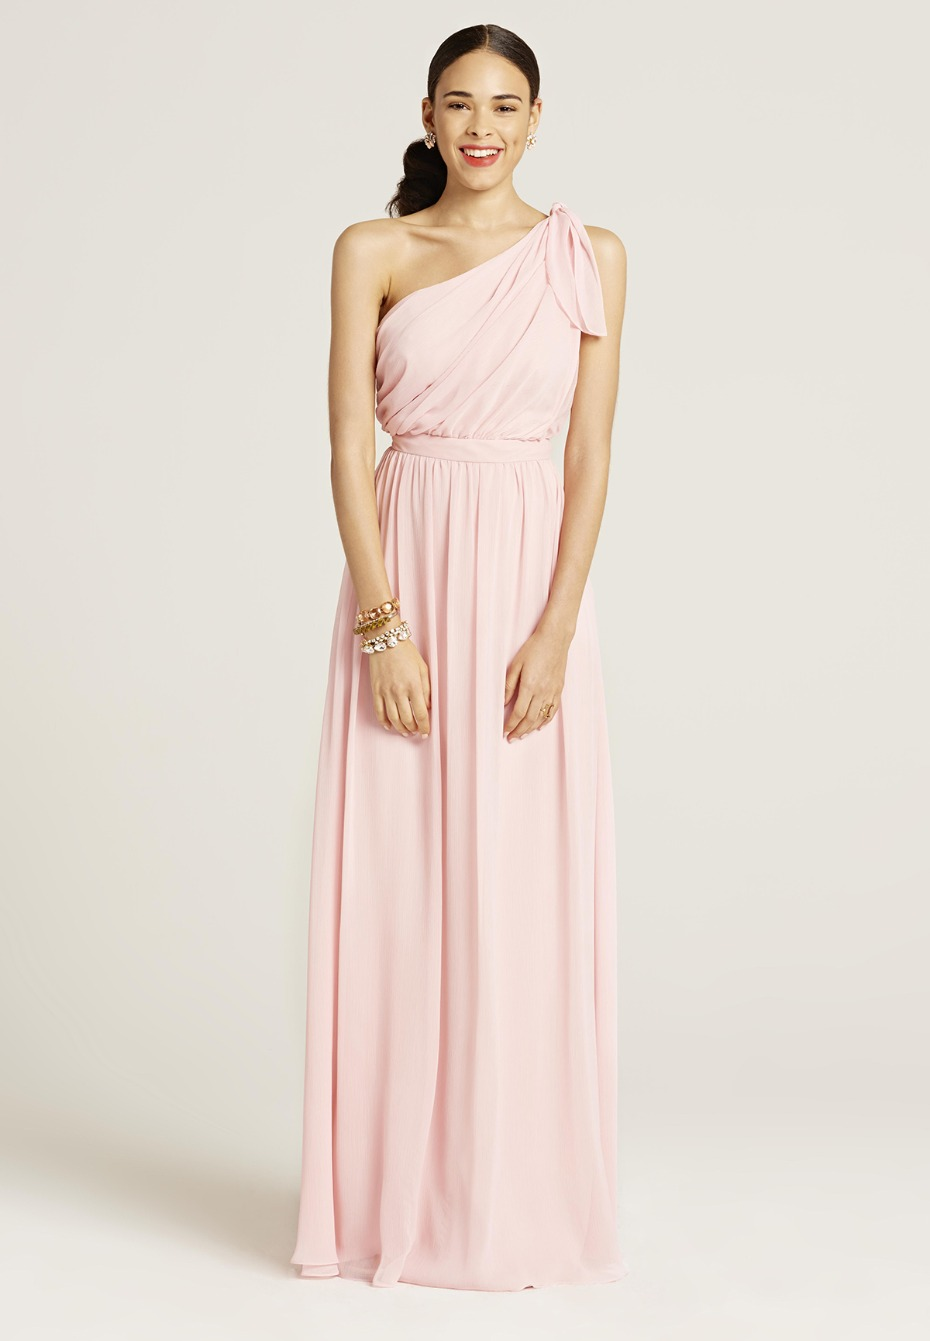 d72421cabd9 Blush bridesmaid dress from Union Station ...